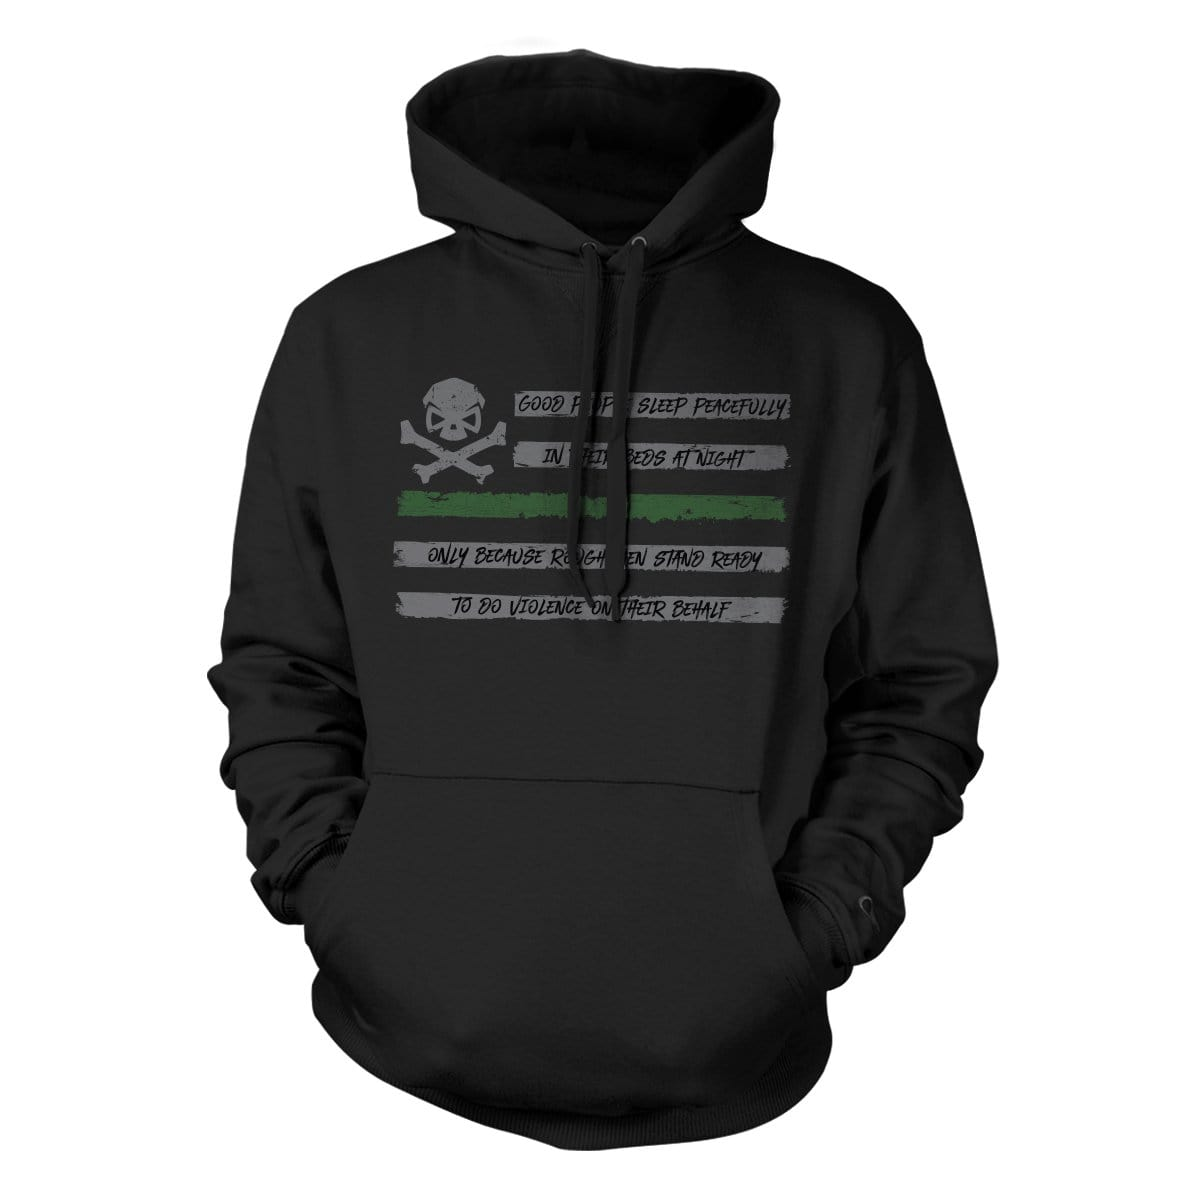 People Sleep - Flag Hoodie - Black/Green - Hoodies - Pipe Hitters Union